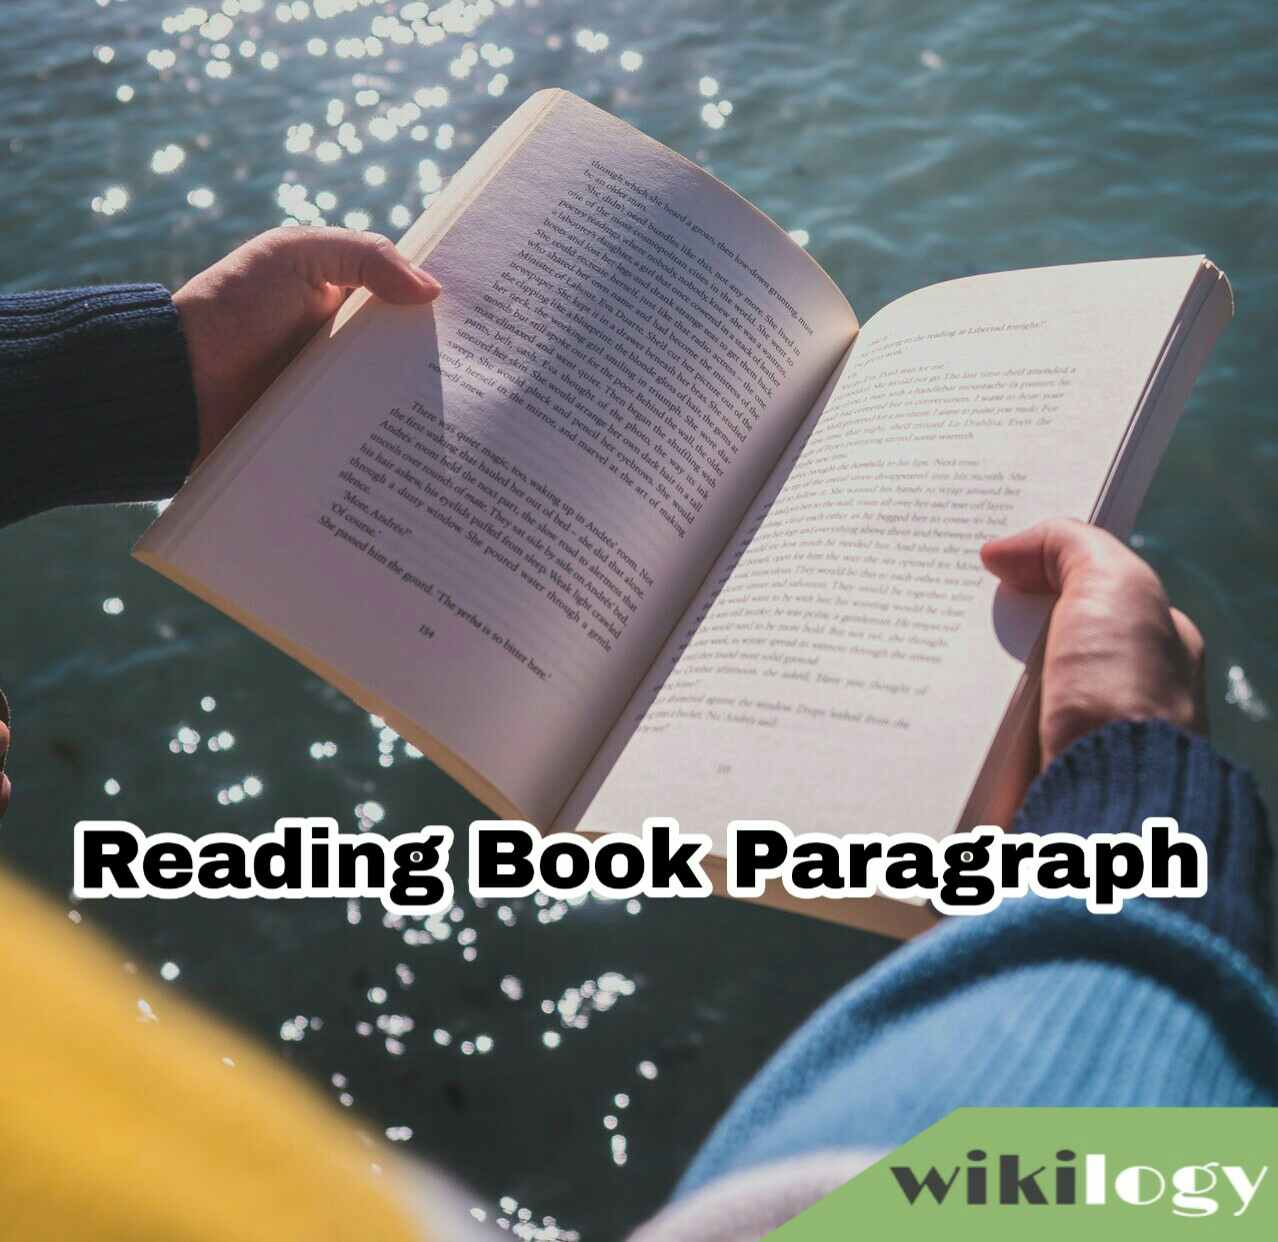 Reading Books Paragraph